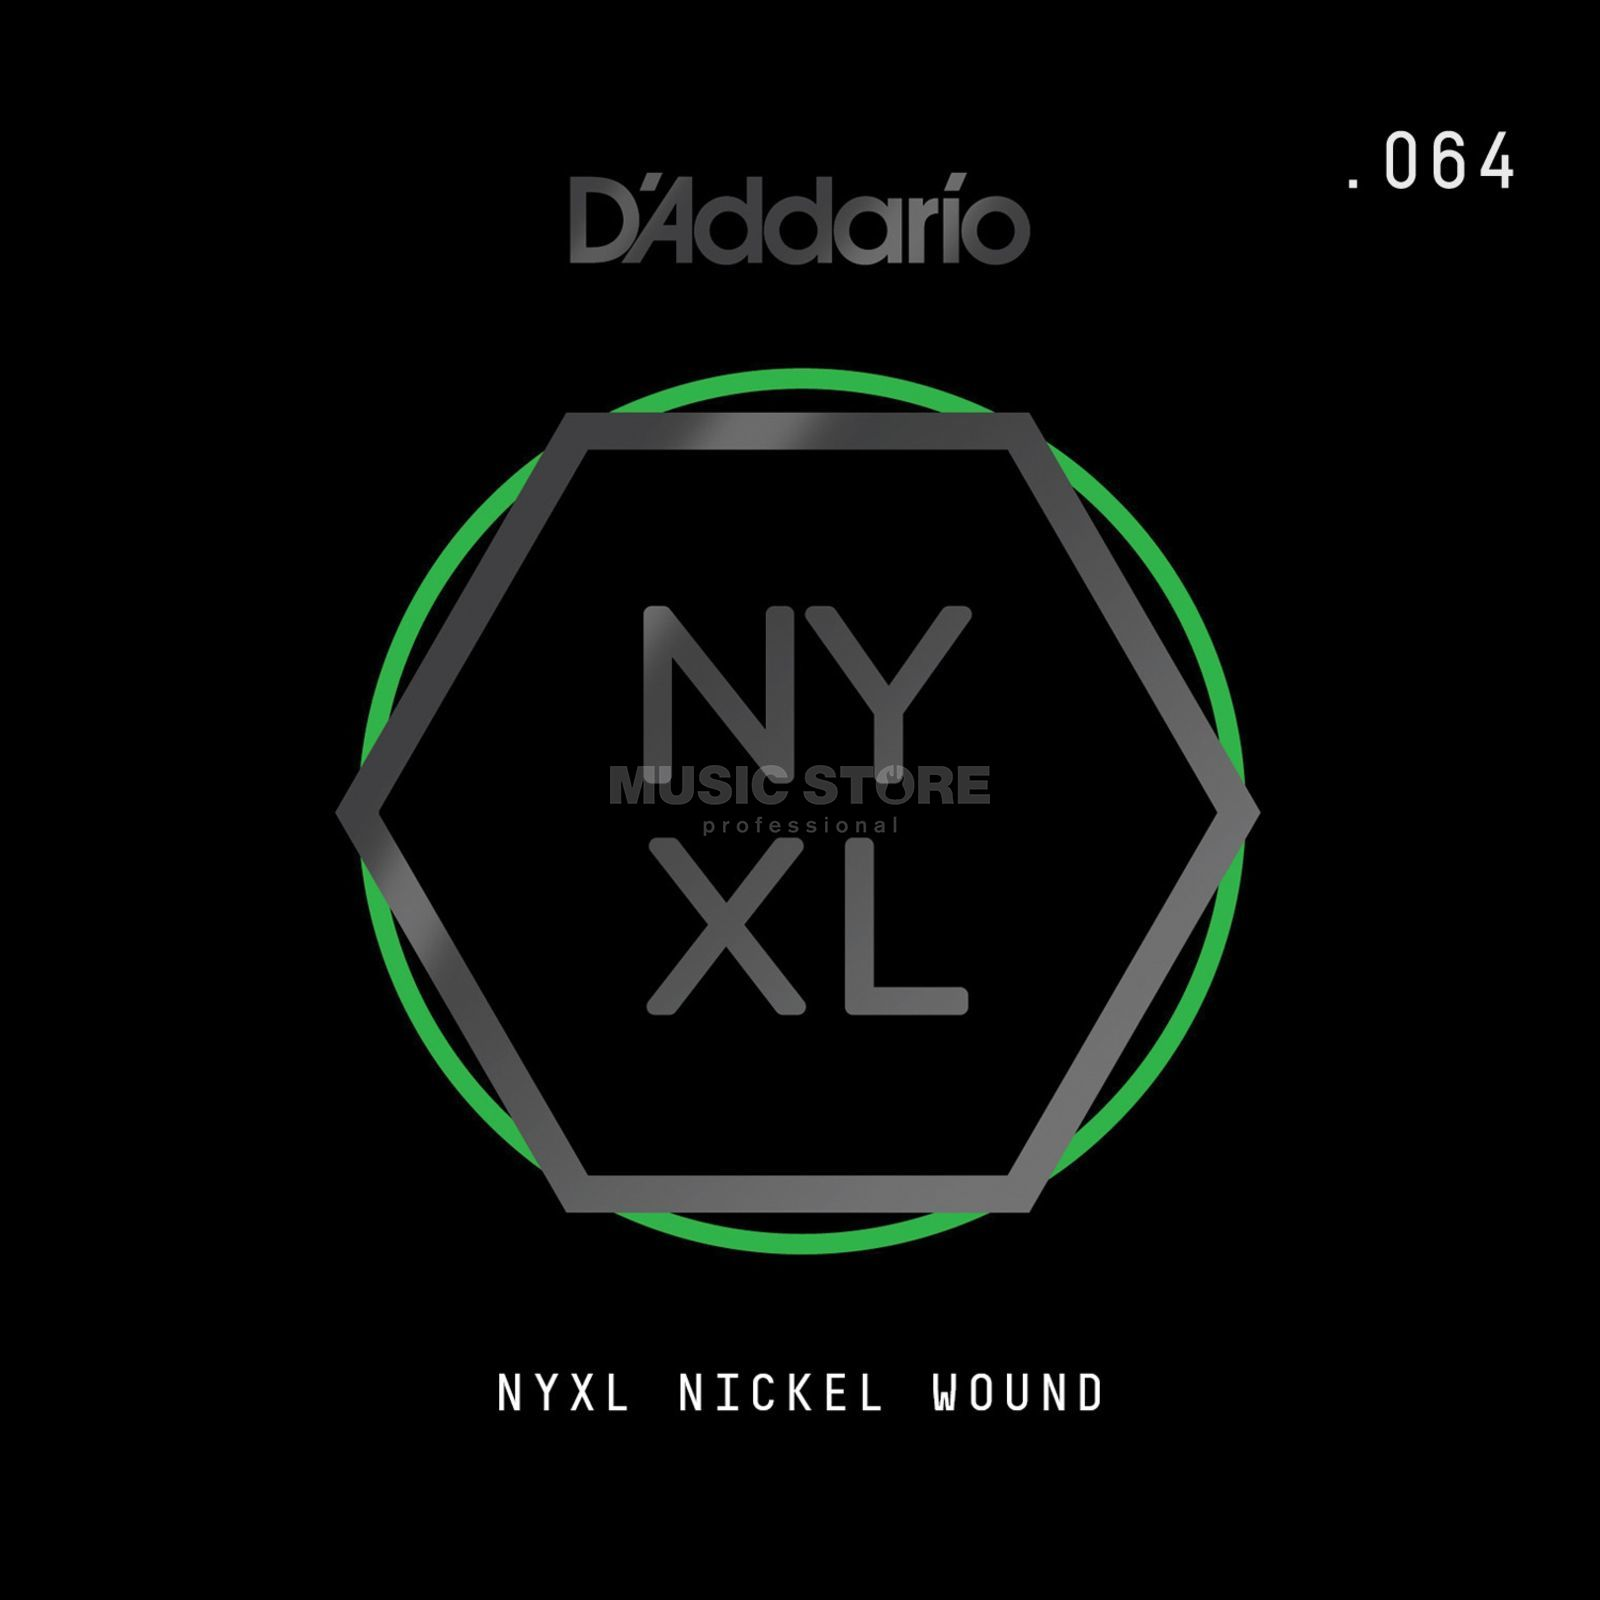 D'Addario NYNW064 Single String Nickel Wound Product Image